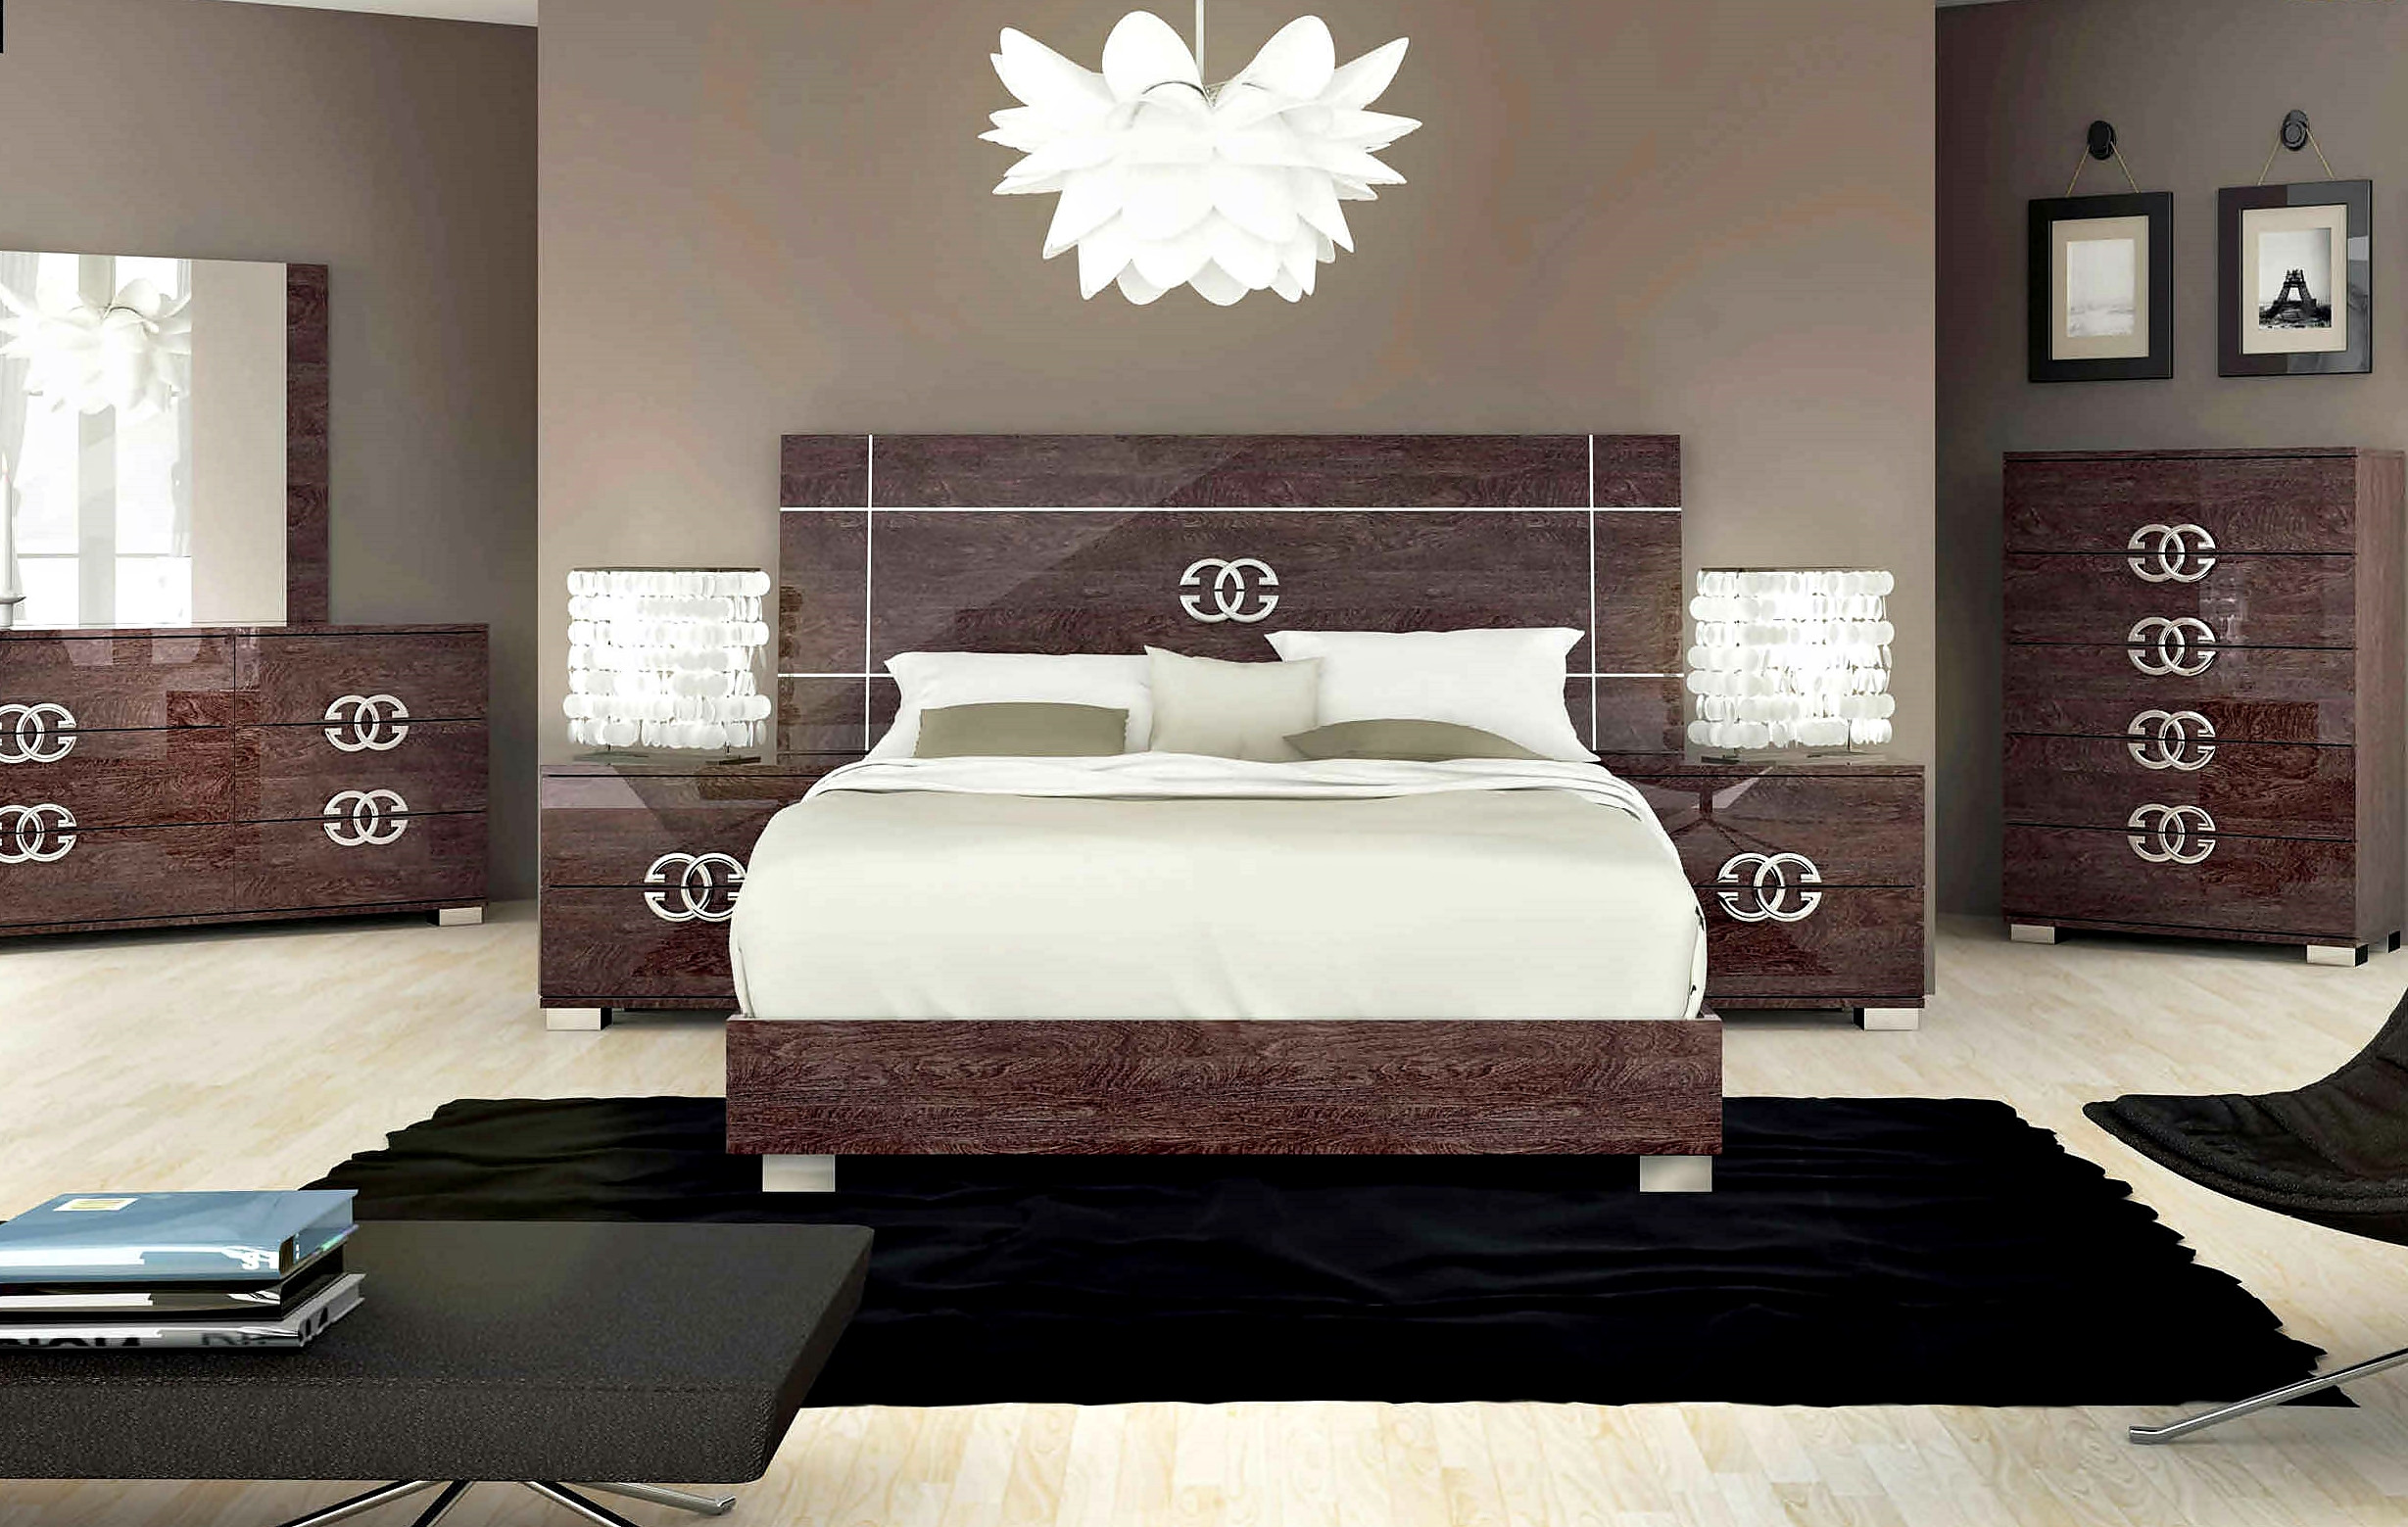 Best ideas about Bedroom Furniture Ideas . Save or Pin TOP 15 Modern bedroom furniture design ideas Video and Now.